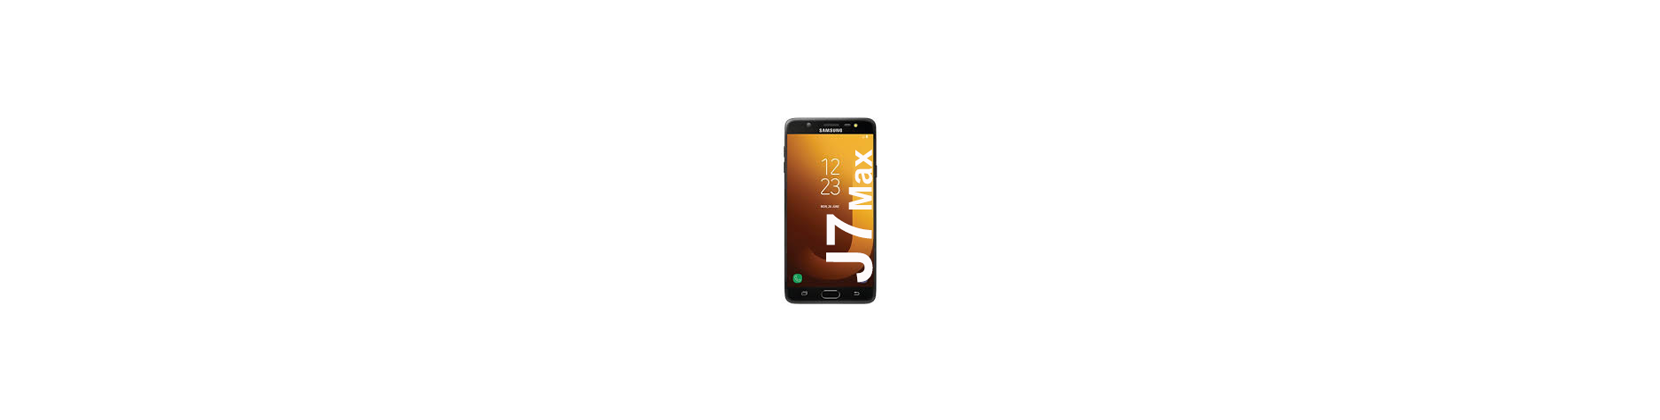 Spare parts for Samsung Galaxy J7 Max G615F